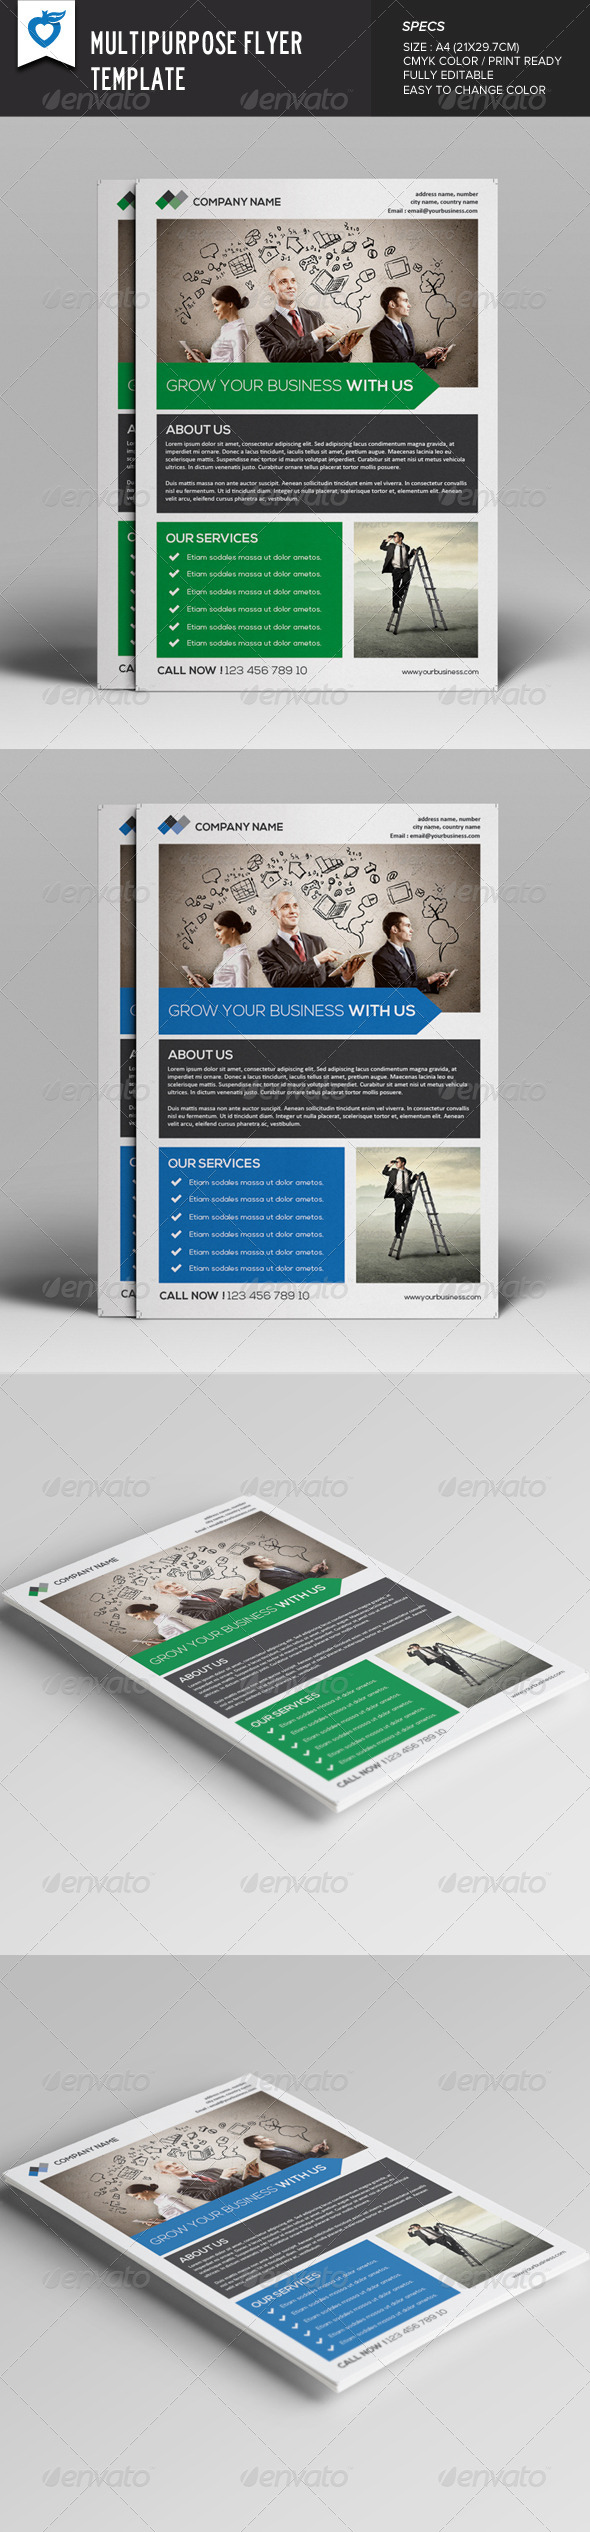 GraphicRiver Multipurpose Flyer Template v3 8035780